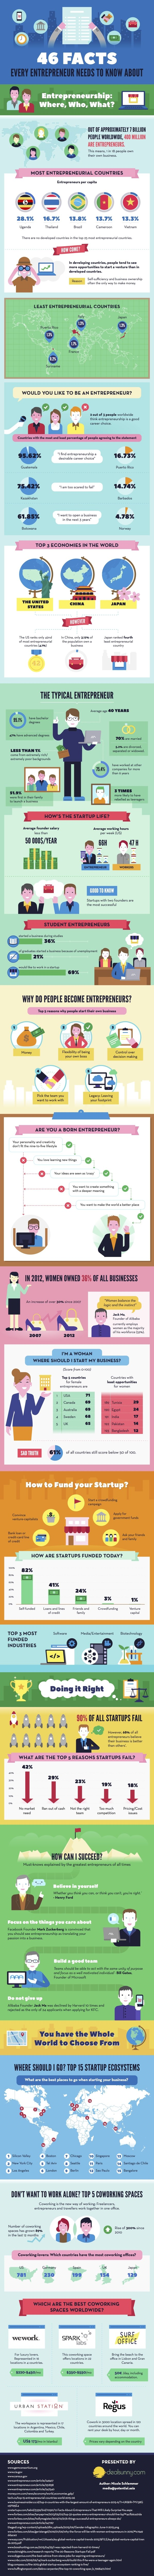 46 Facts Every Entrepreneur Should Know